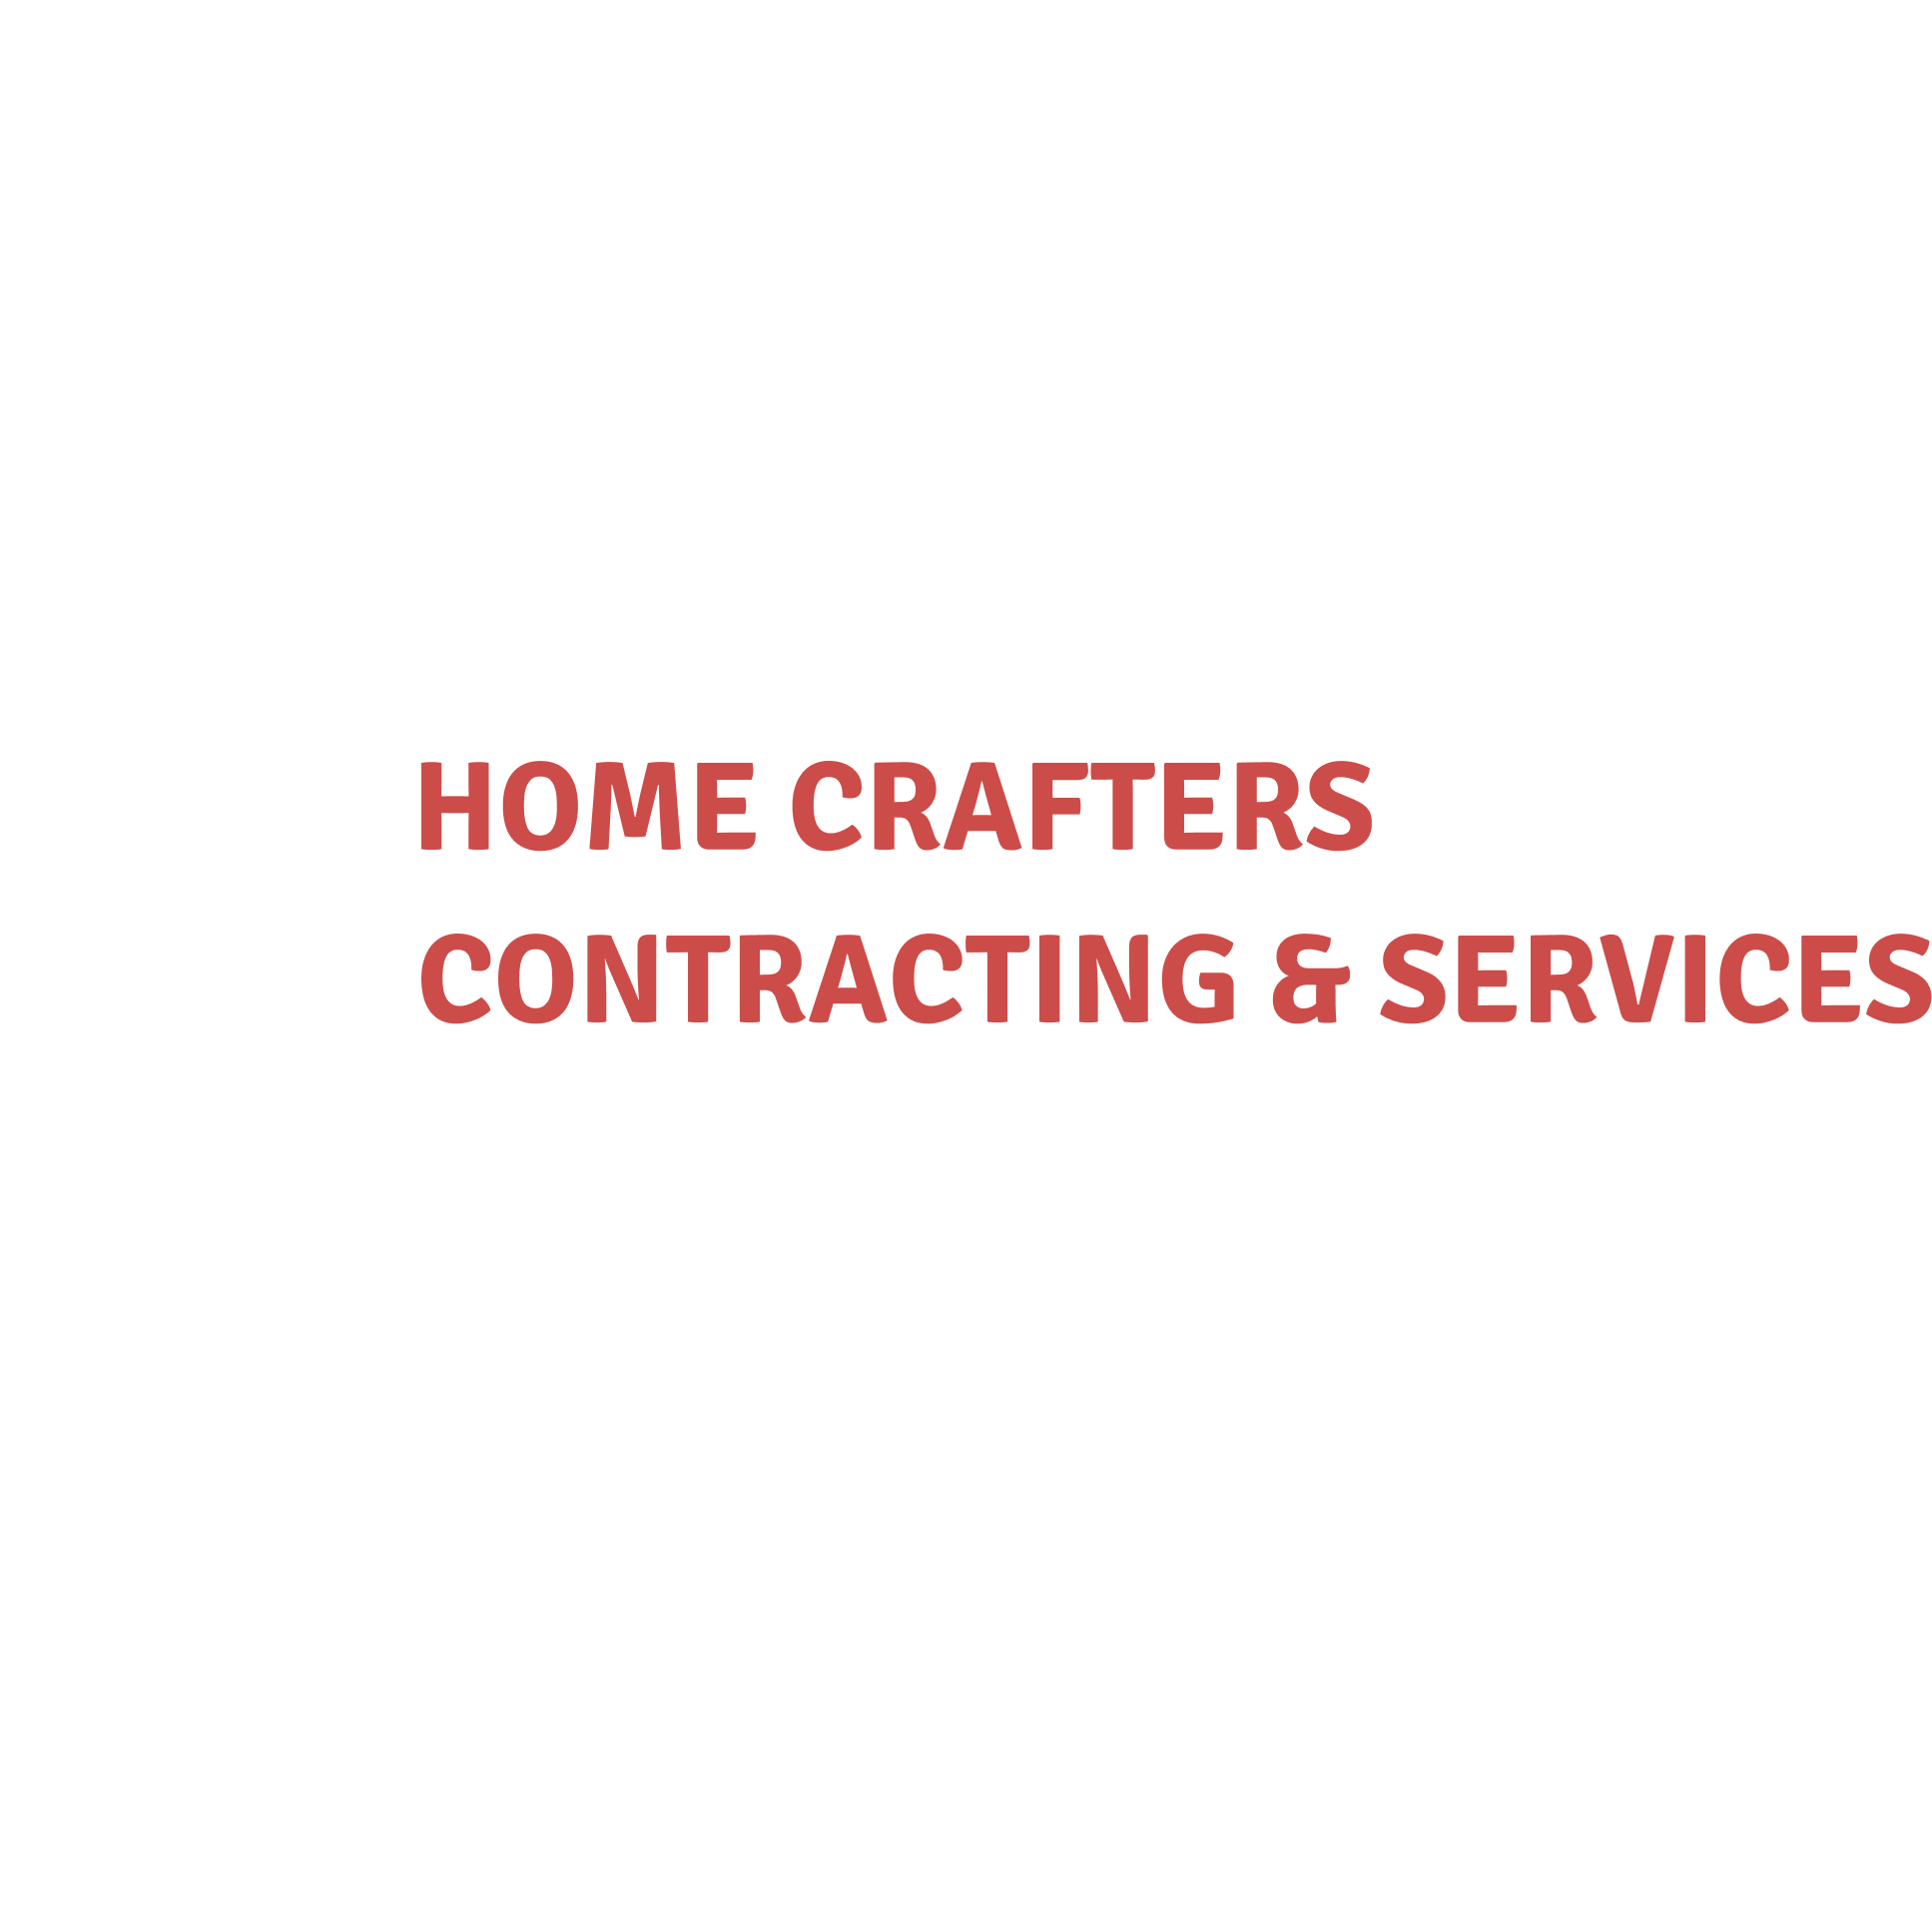 Construction Company in MD Baltimore 21206 Home Crafters Contracting And Roofing 406 Danville Rd  (410)982-1629